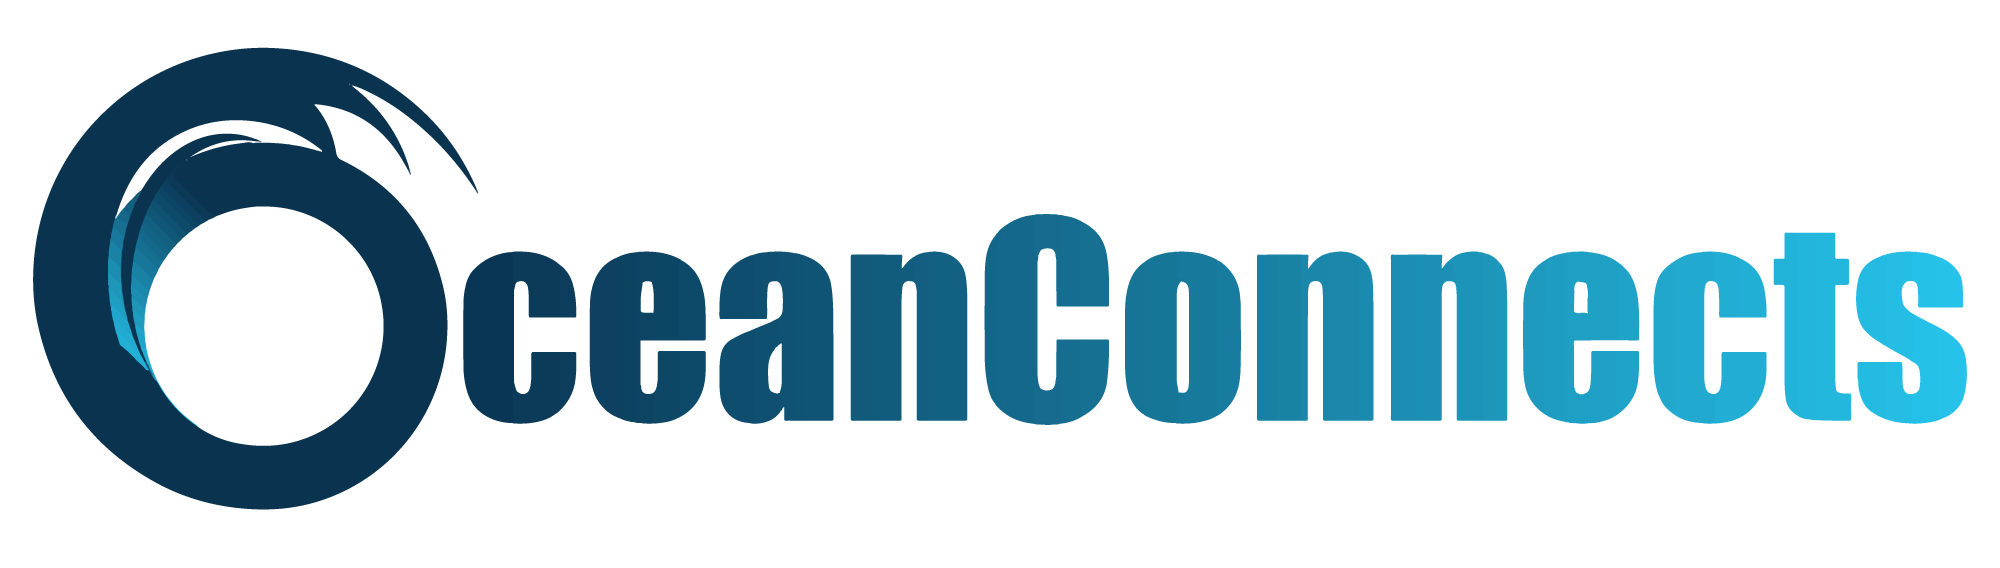 logo-ocean-connects